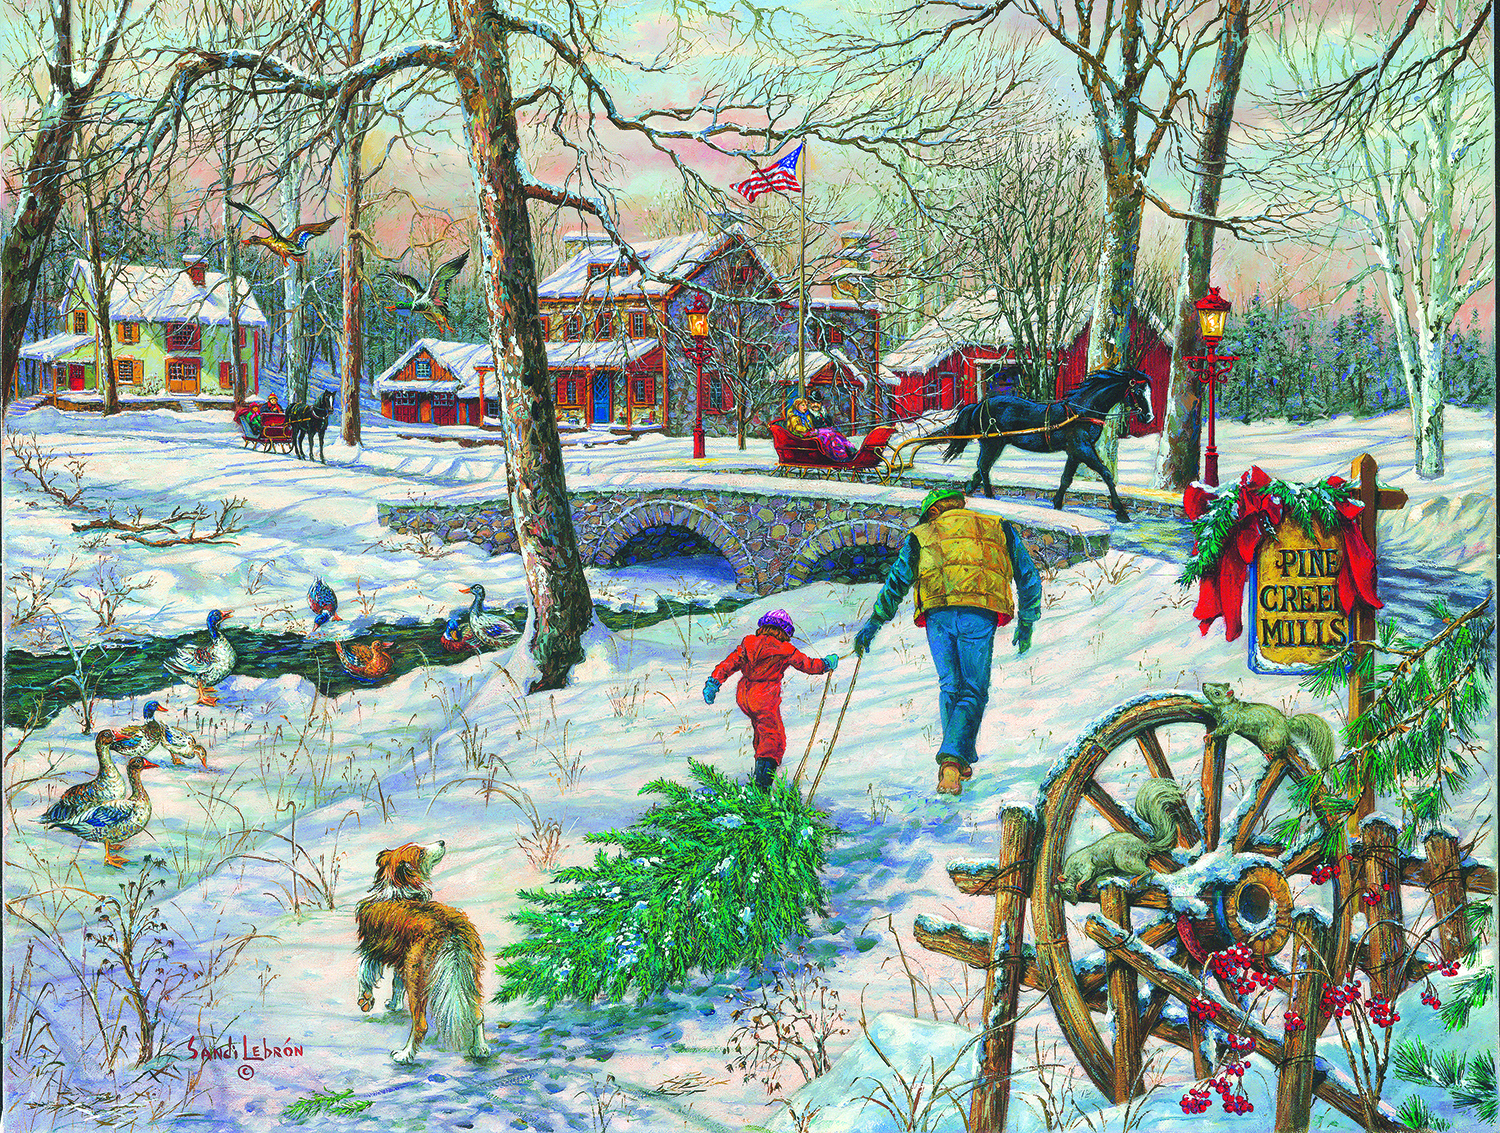 Pine Creek Mills 1000 pc Jigsaw Puzzle by SunsOut